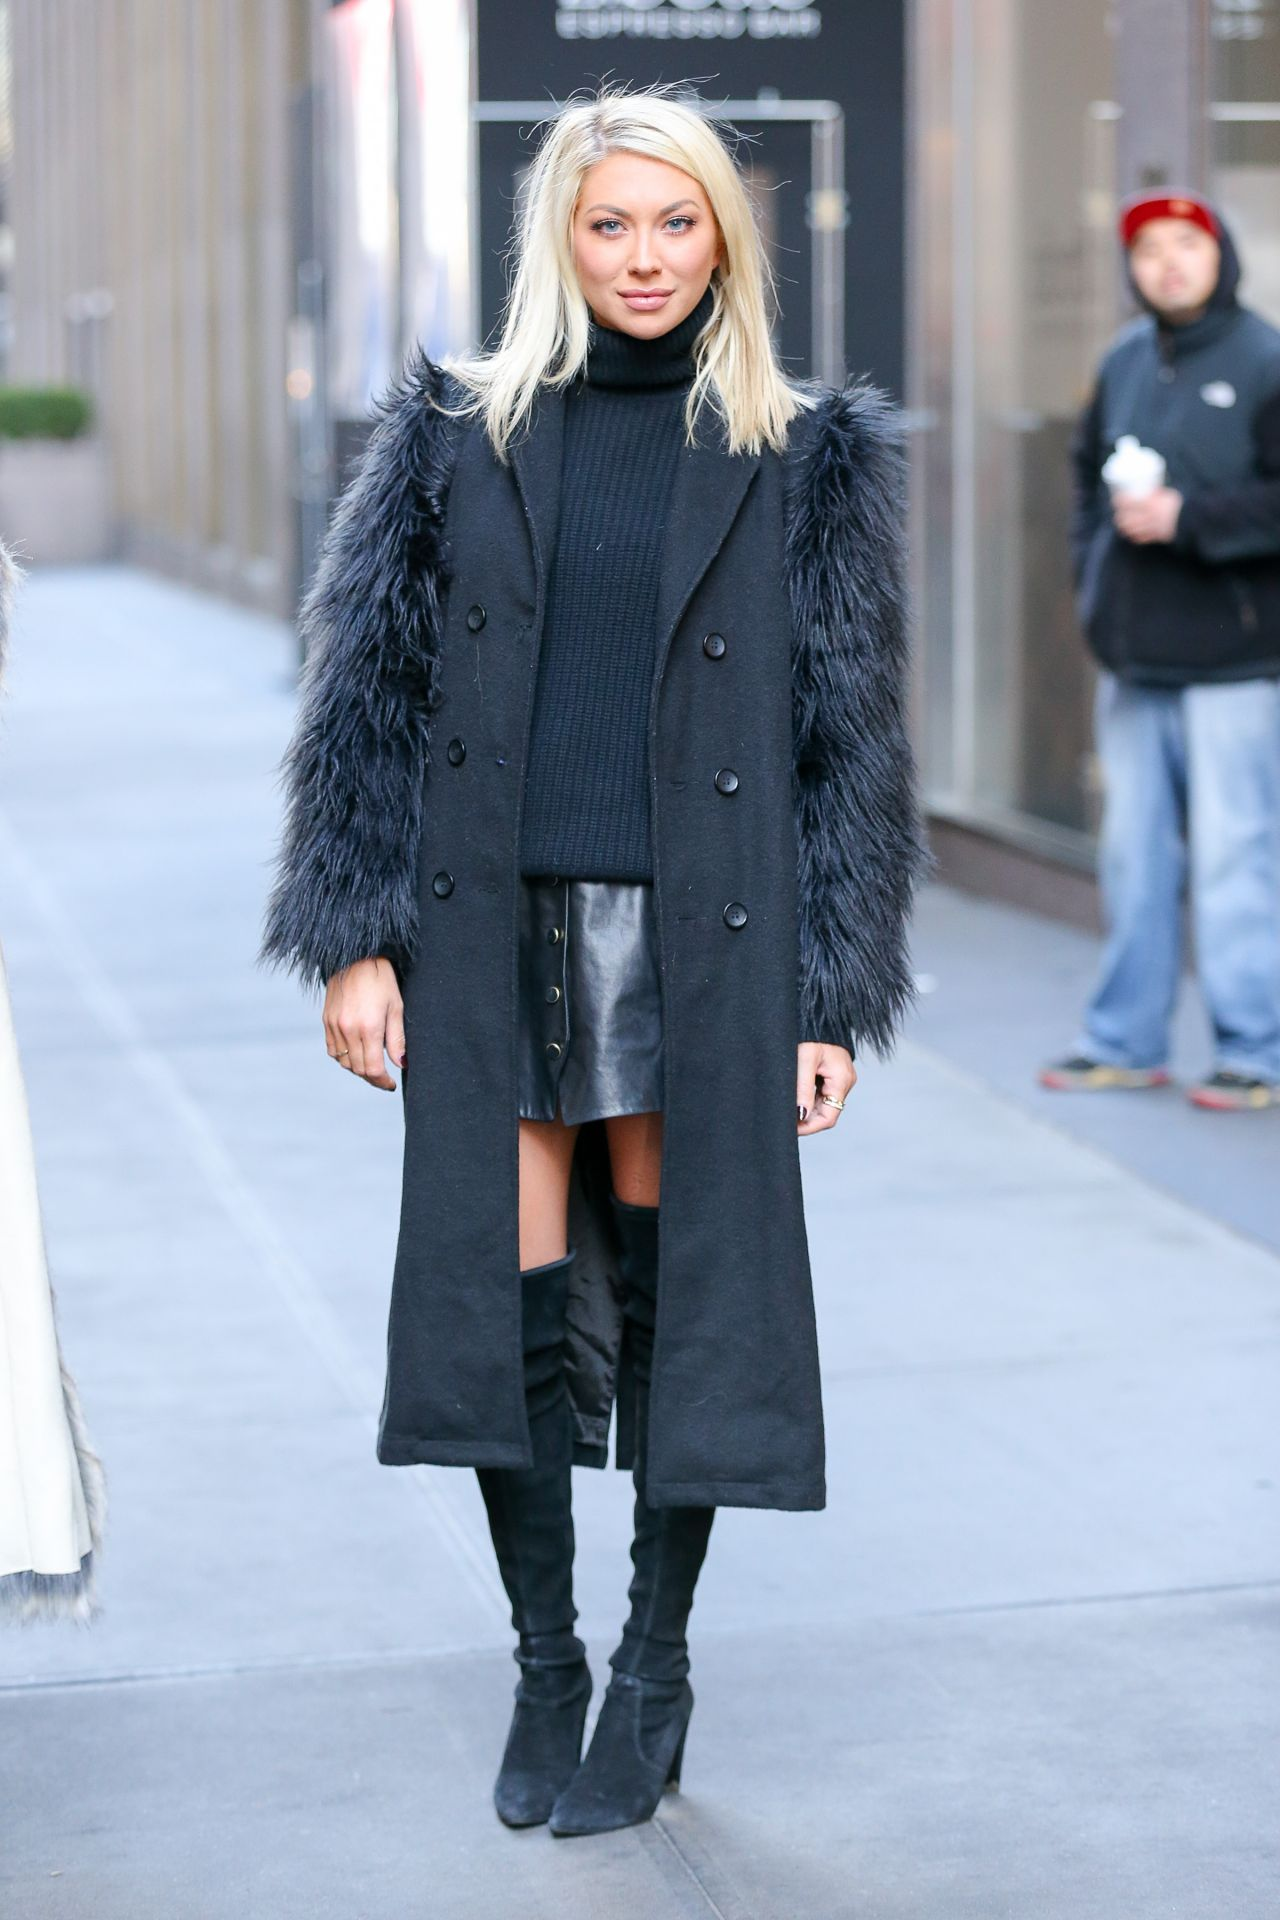 stassi-schroeder-wearing-a-black-stylish-outfit-as-leaving-siriusxm-radio-in-nyc-1-11-2017-6.jpg